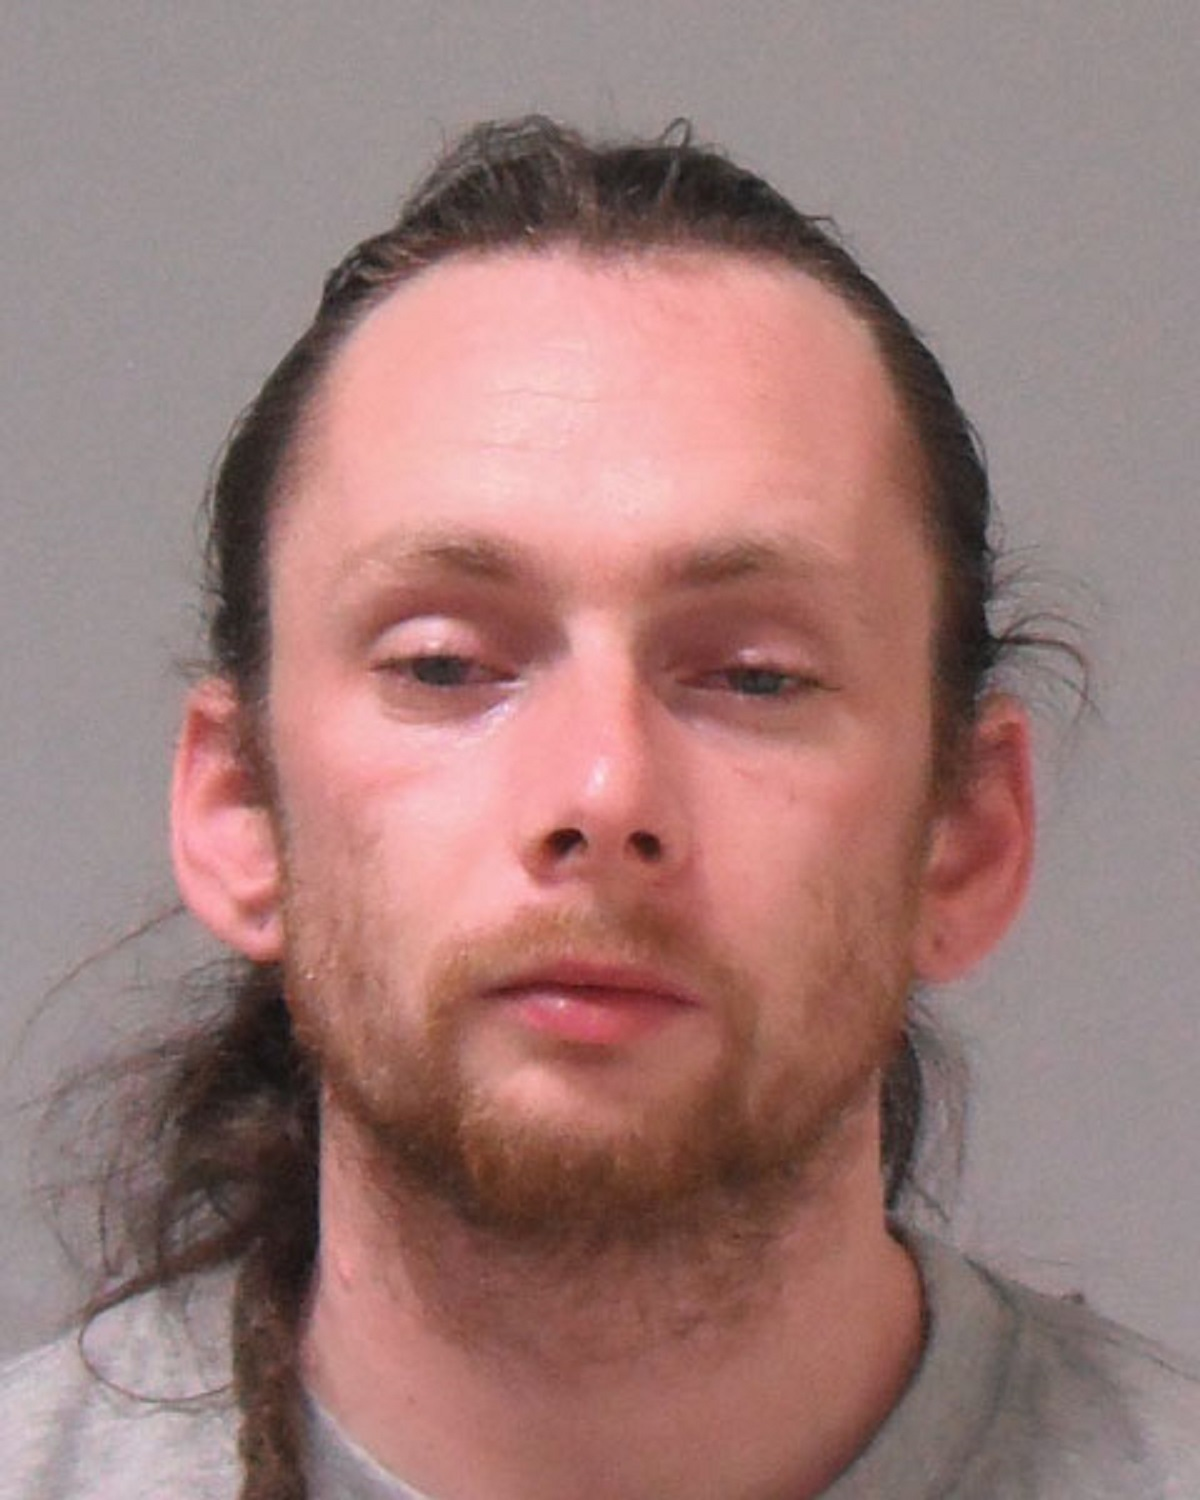 JAILED: Jonathan Finch. Photo: West Mercia Police